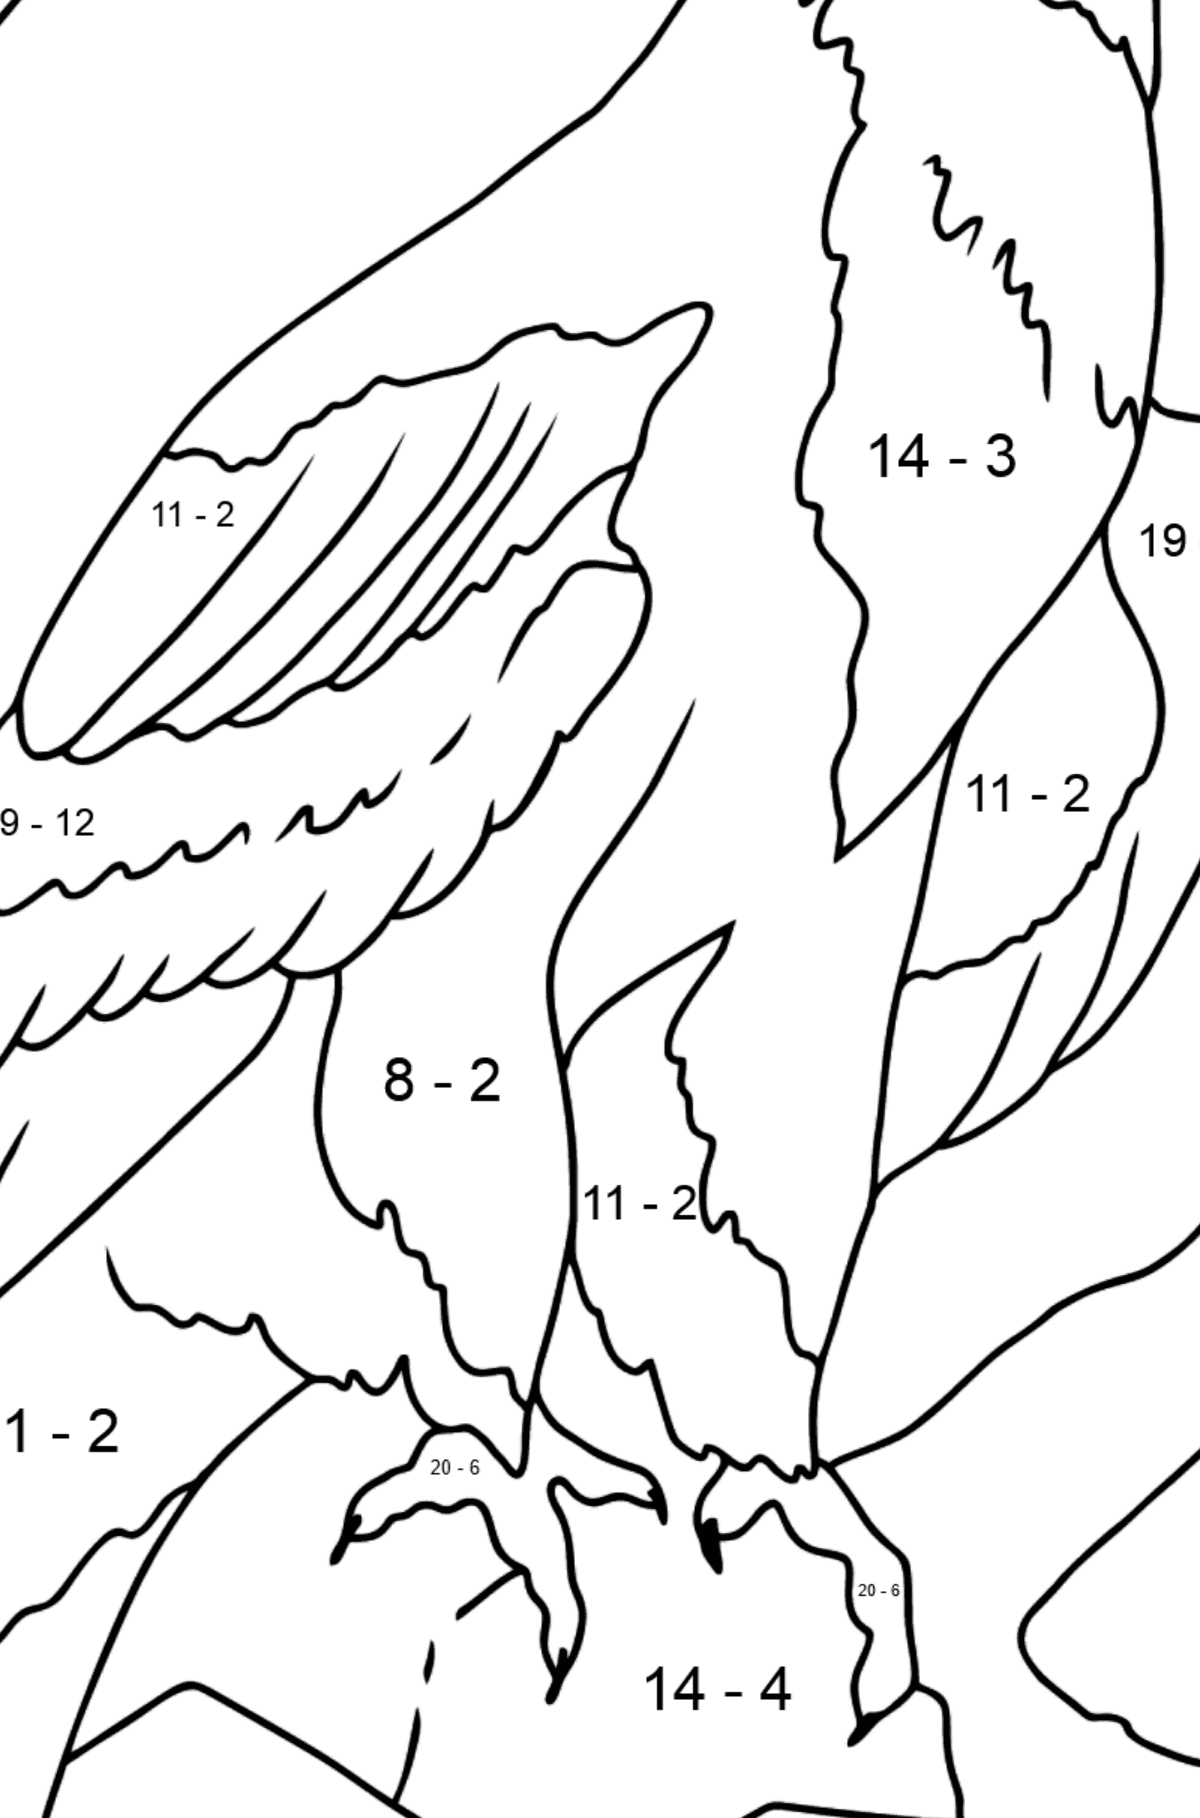 Coloring Page - An Alpine Eagle - Math Coloring - Subtraction for Kids